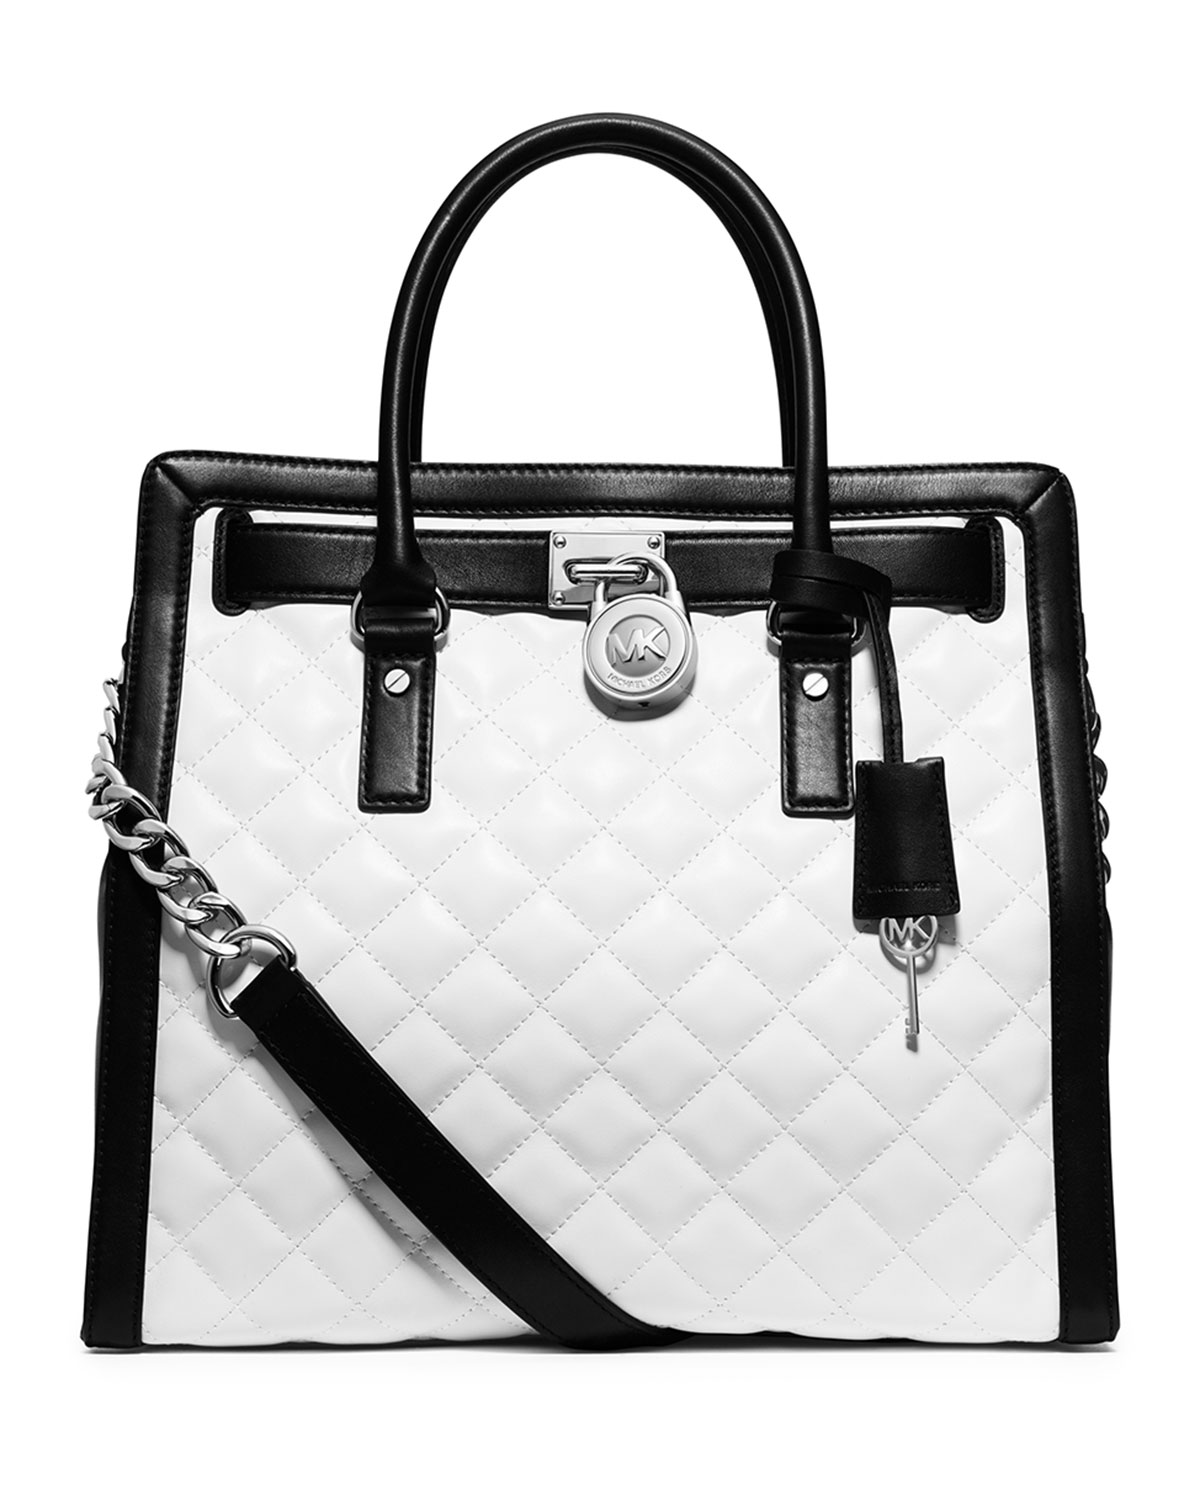 MICHAEL Michael KorsHamilton Quilted North-South Tote Bag, Optic White Black 80a6bdbe99